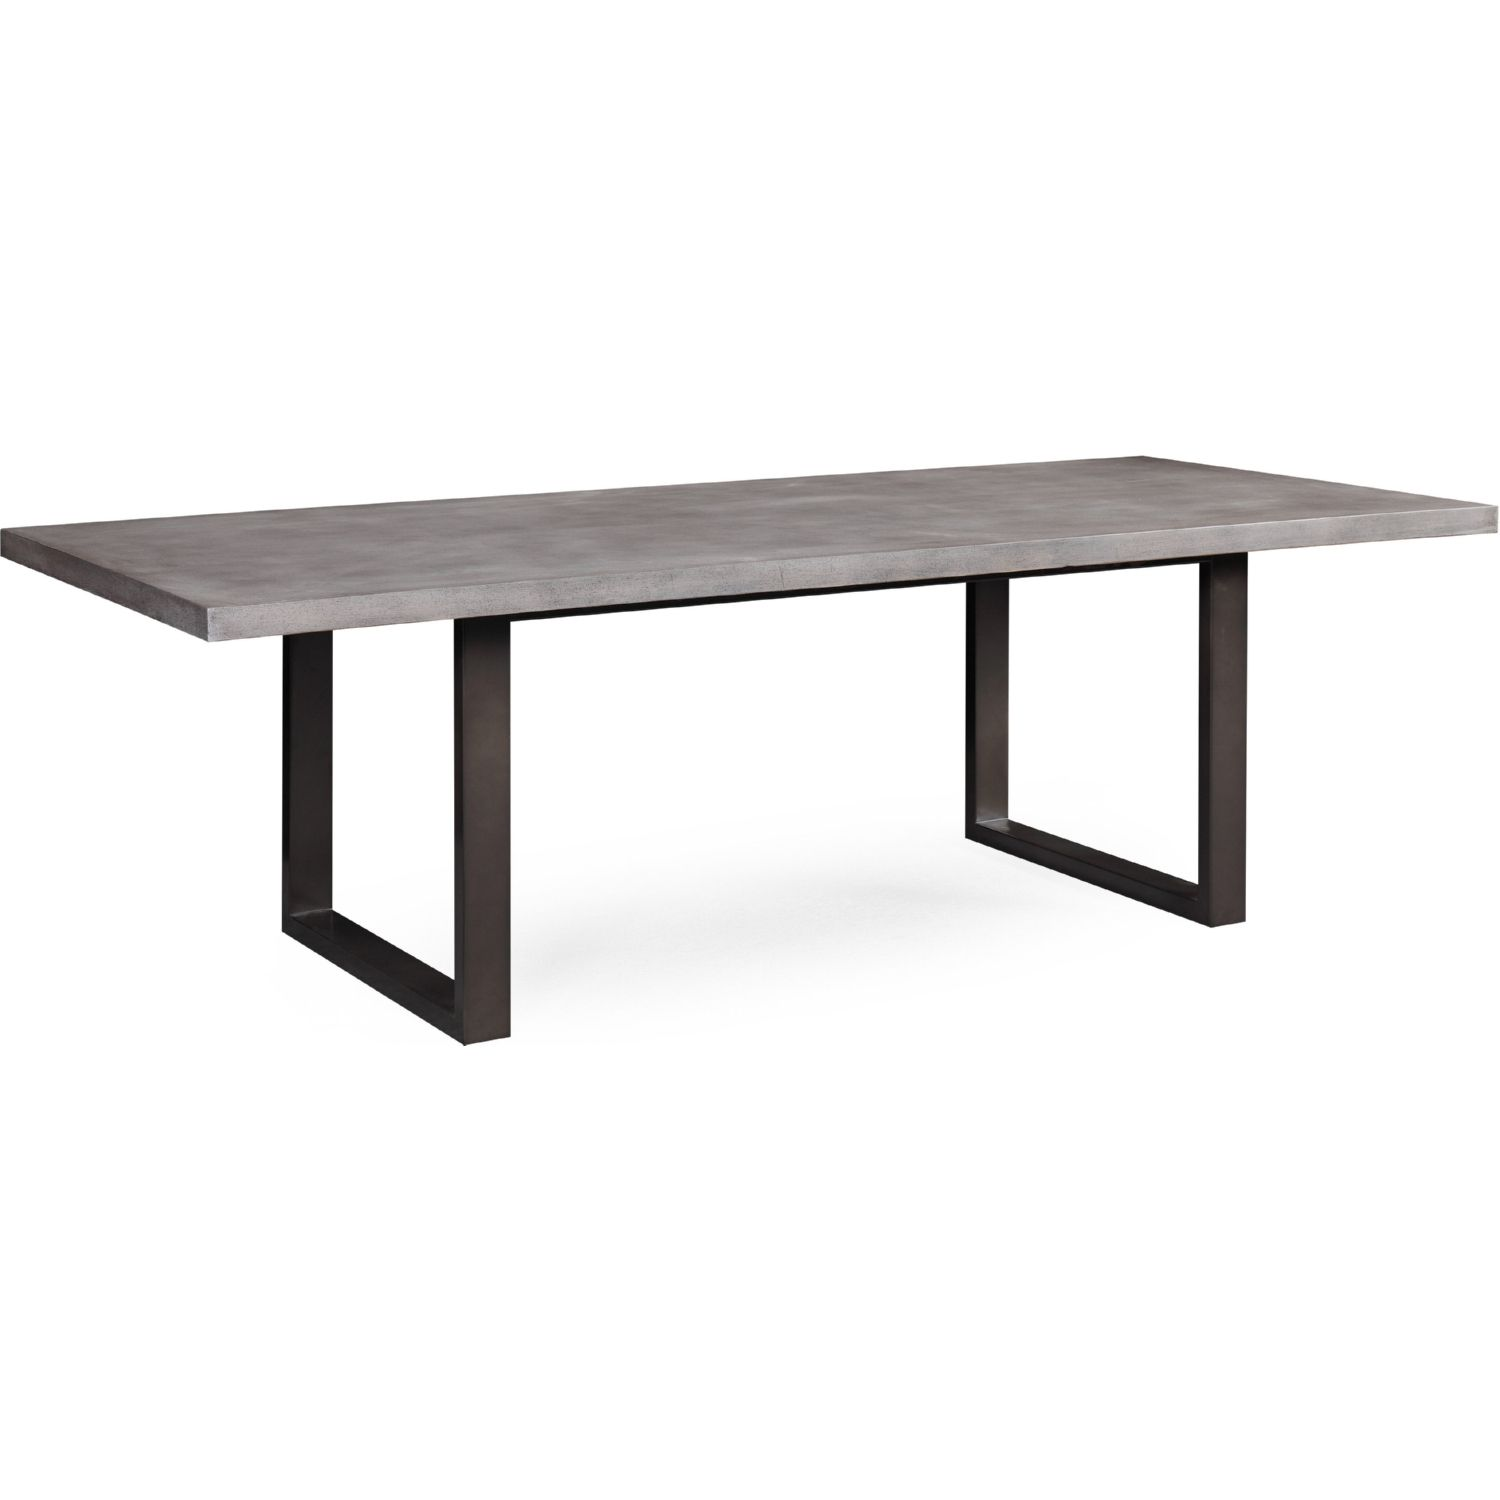 Edna 94 Grey Concrete Dining Table On Black Steel Legs By Tov